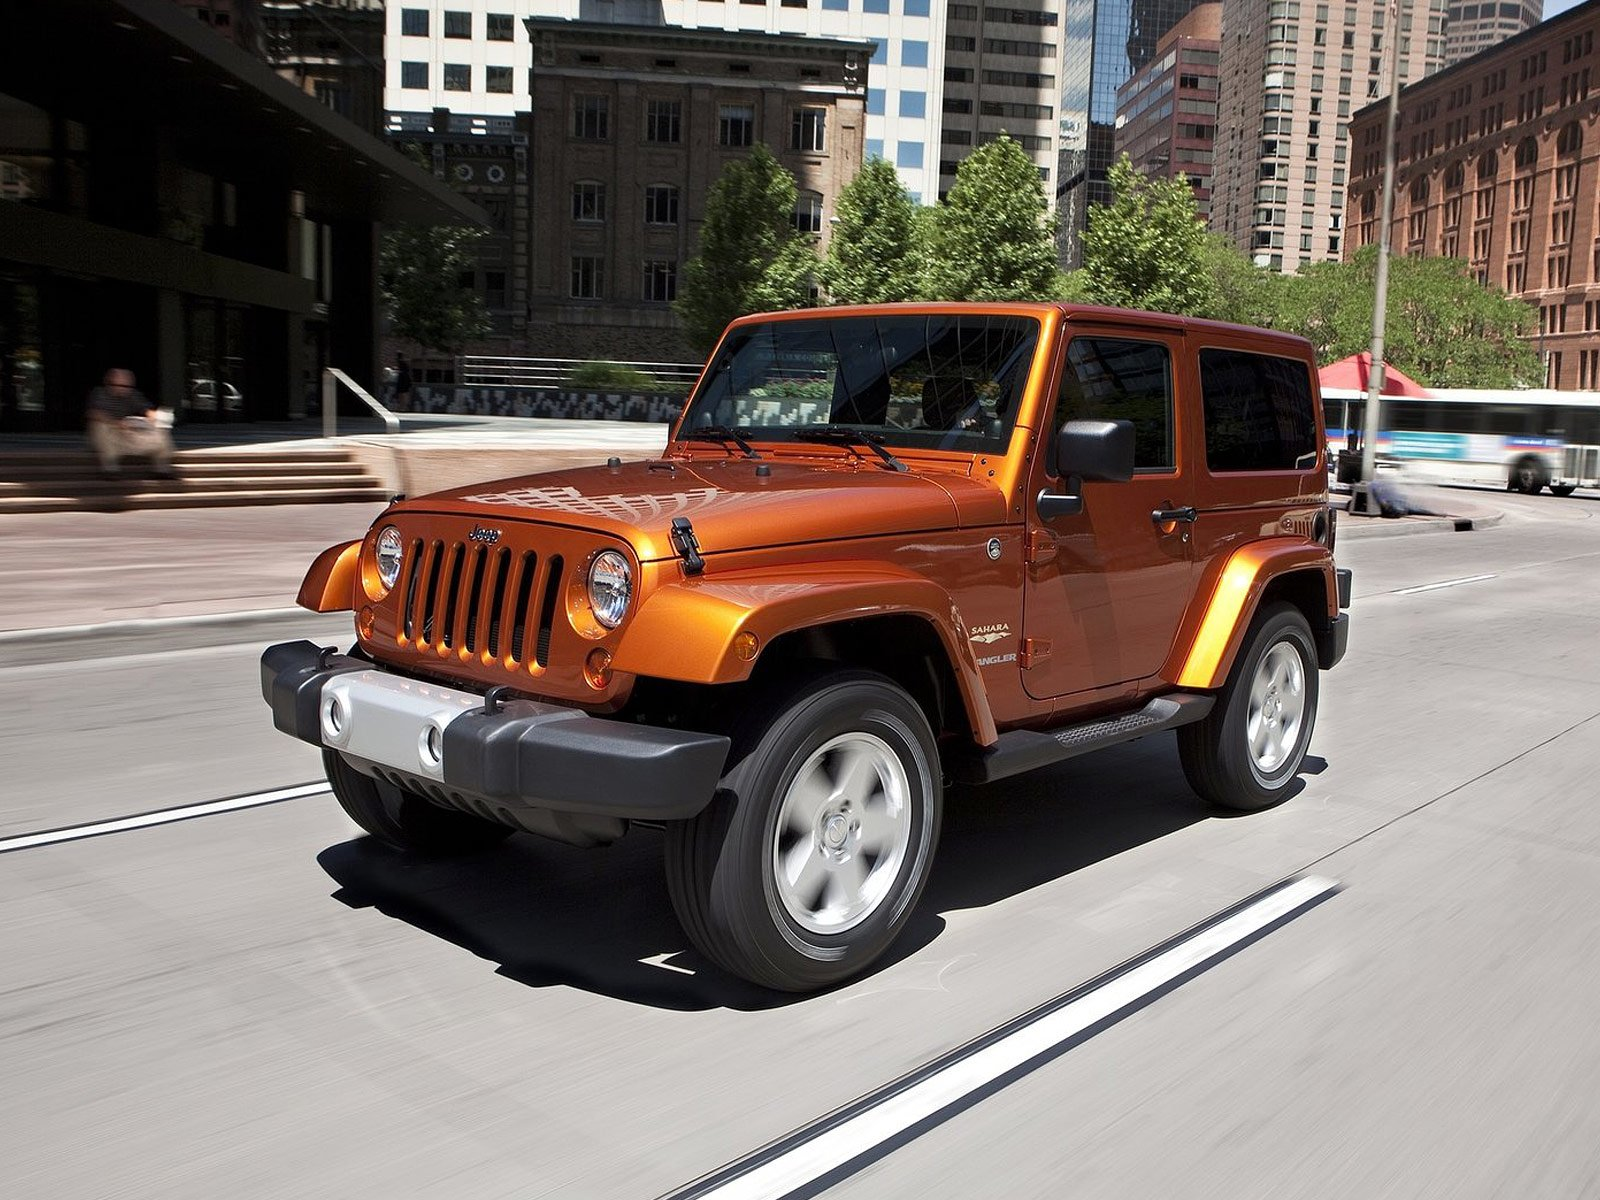 Latest 2011 Jeep Wrangler Jeep Pictures Review Free Download